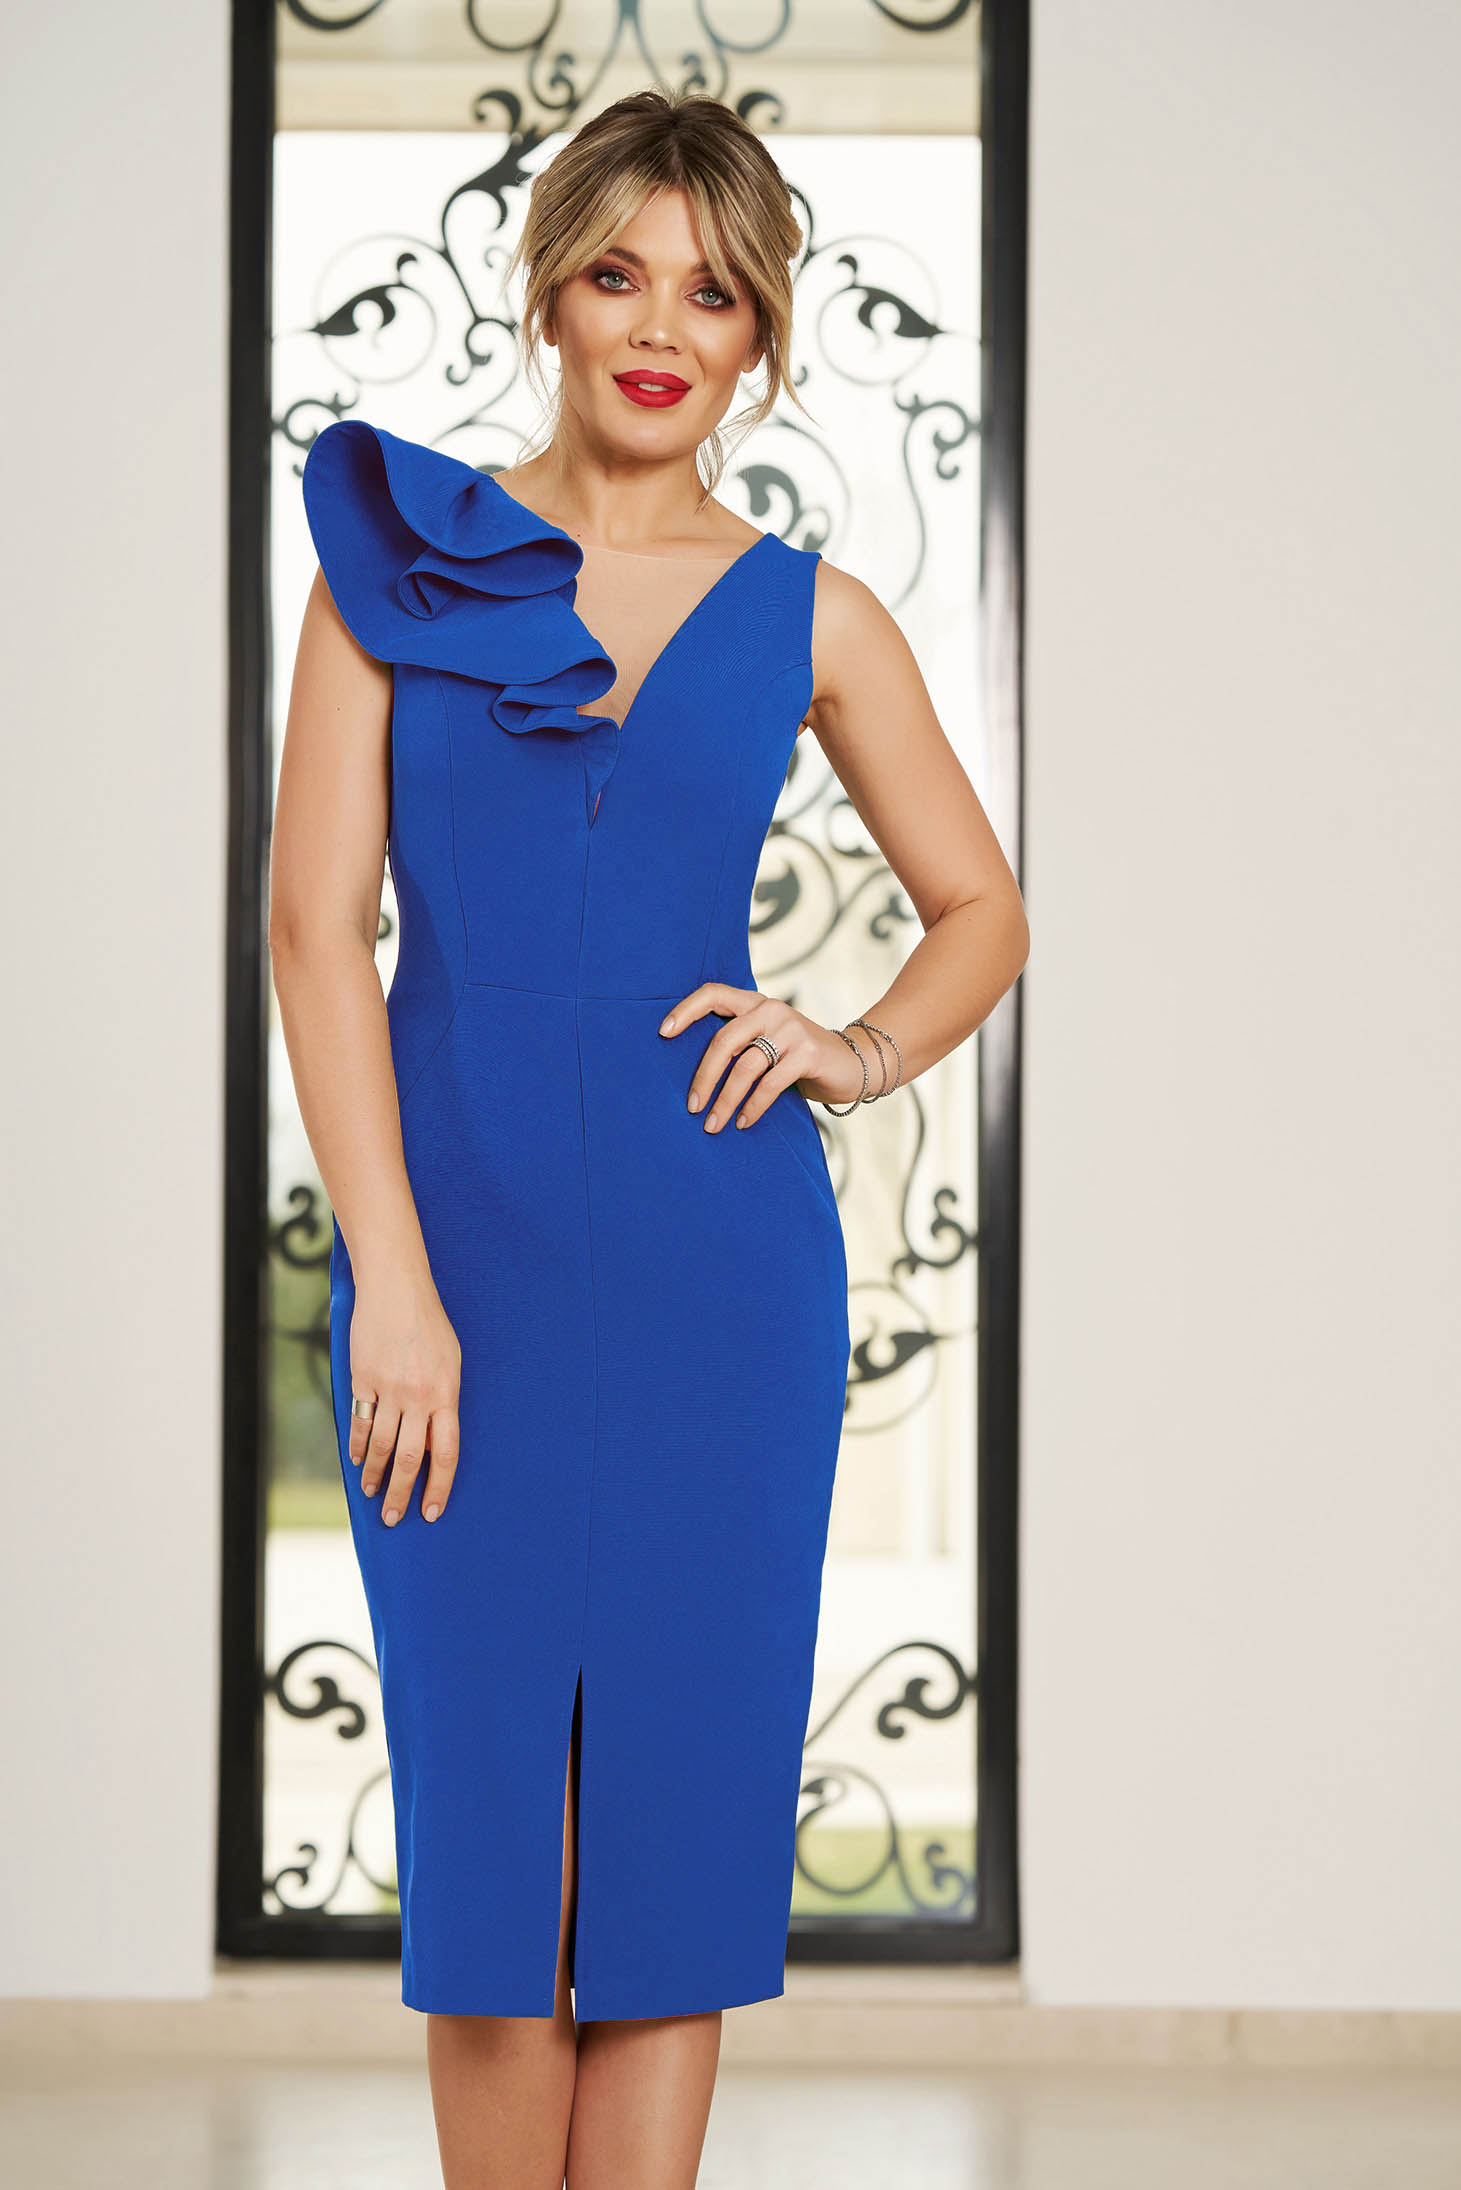 StarShinerS blue occasional dress slightly elastic fabric with ruffle details midi pencil